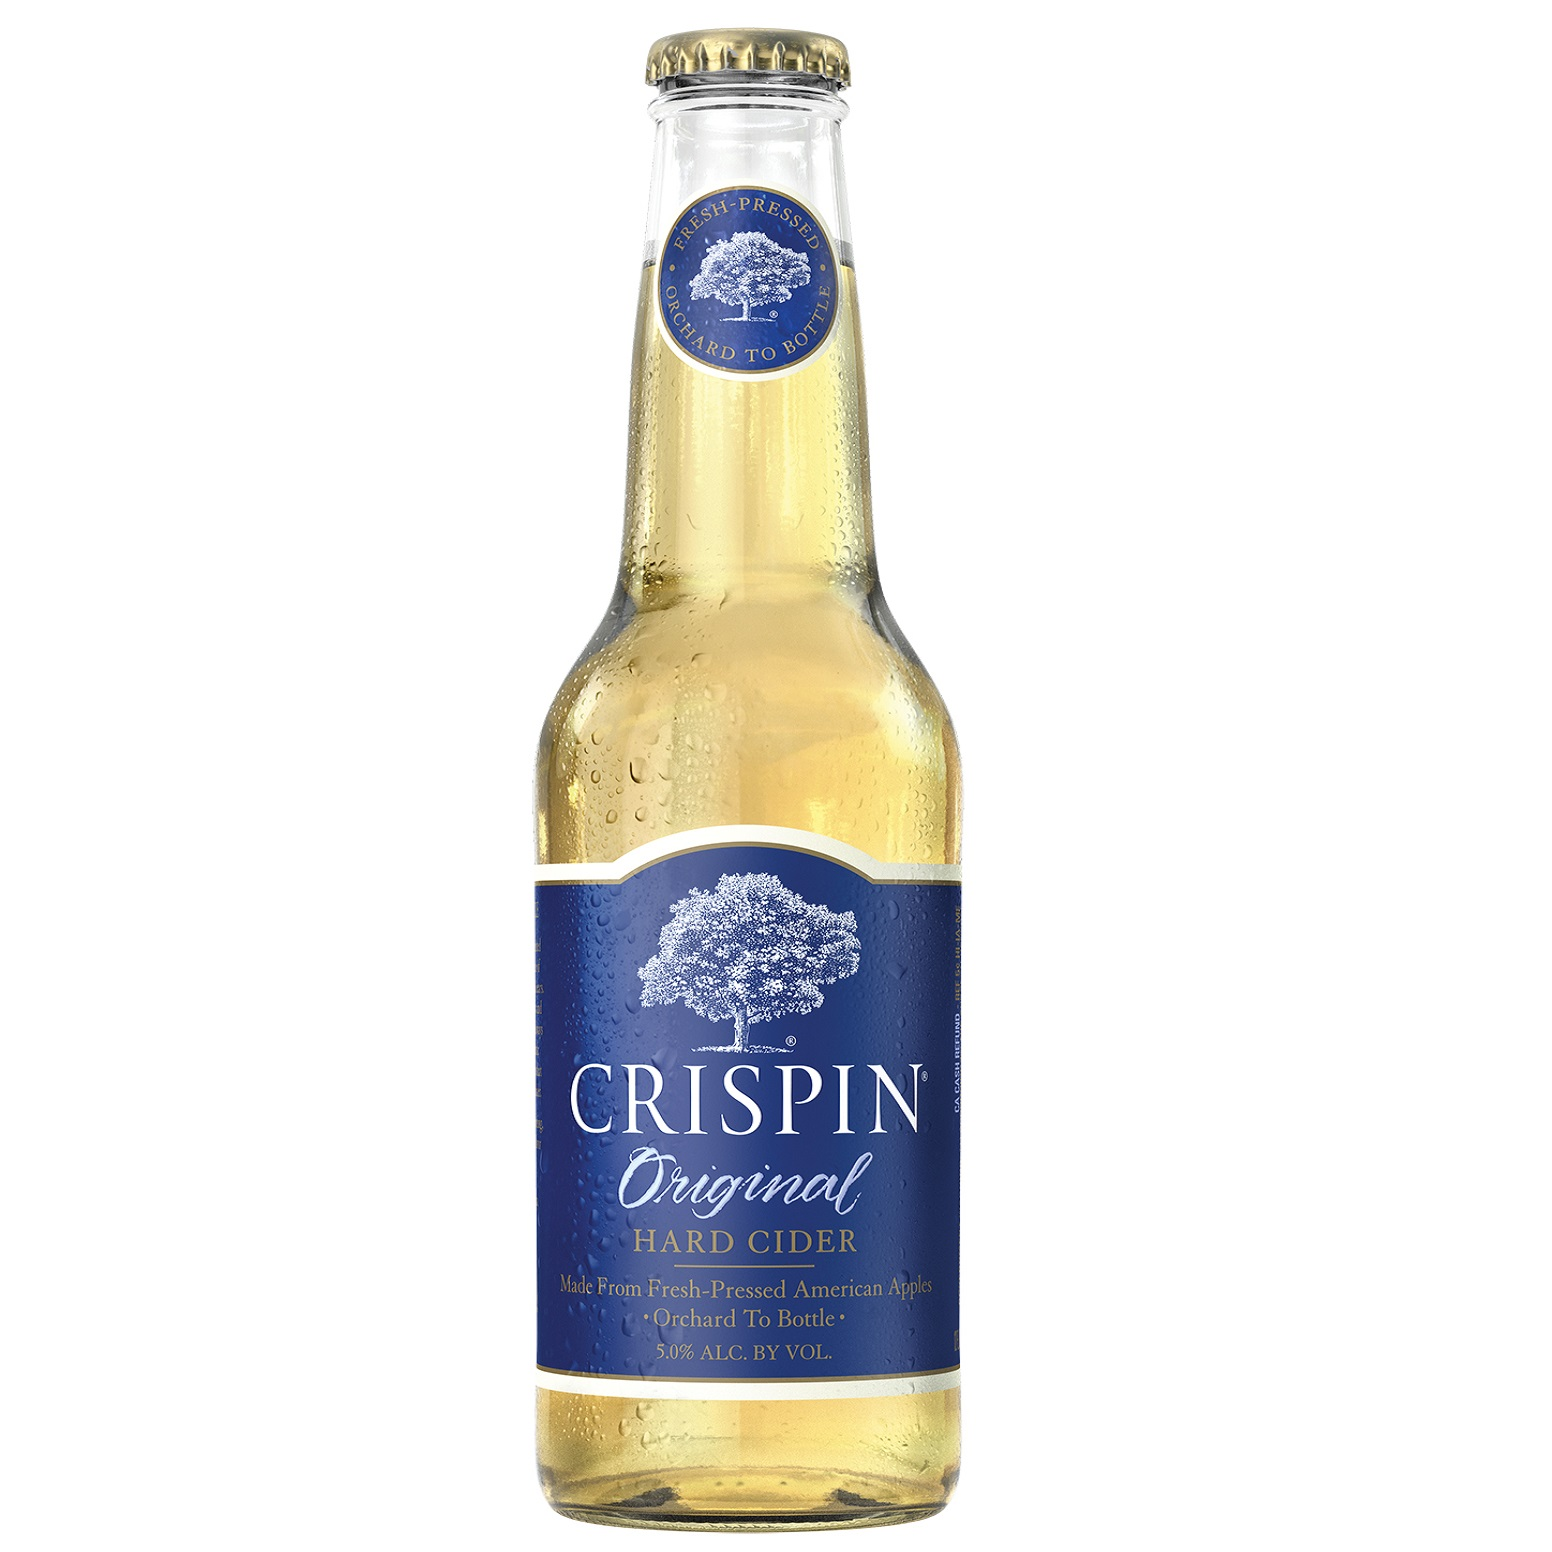 Crispin Original Hard Cider Bottle